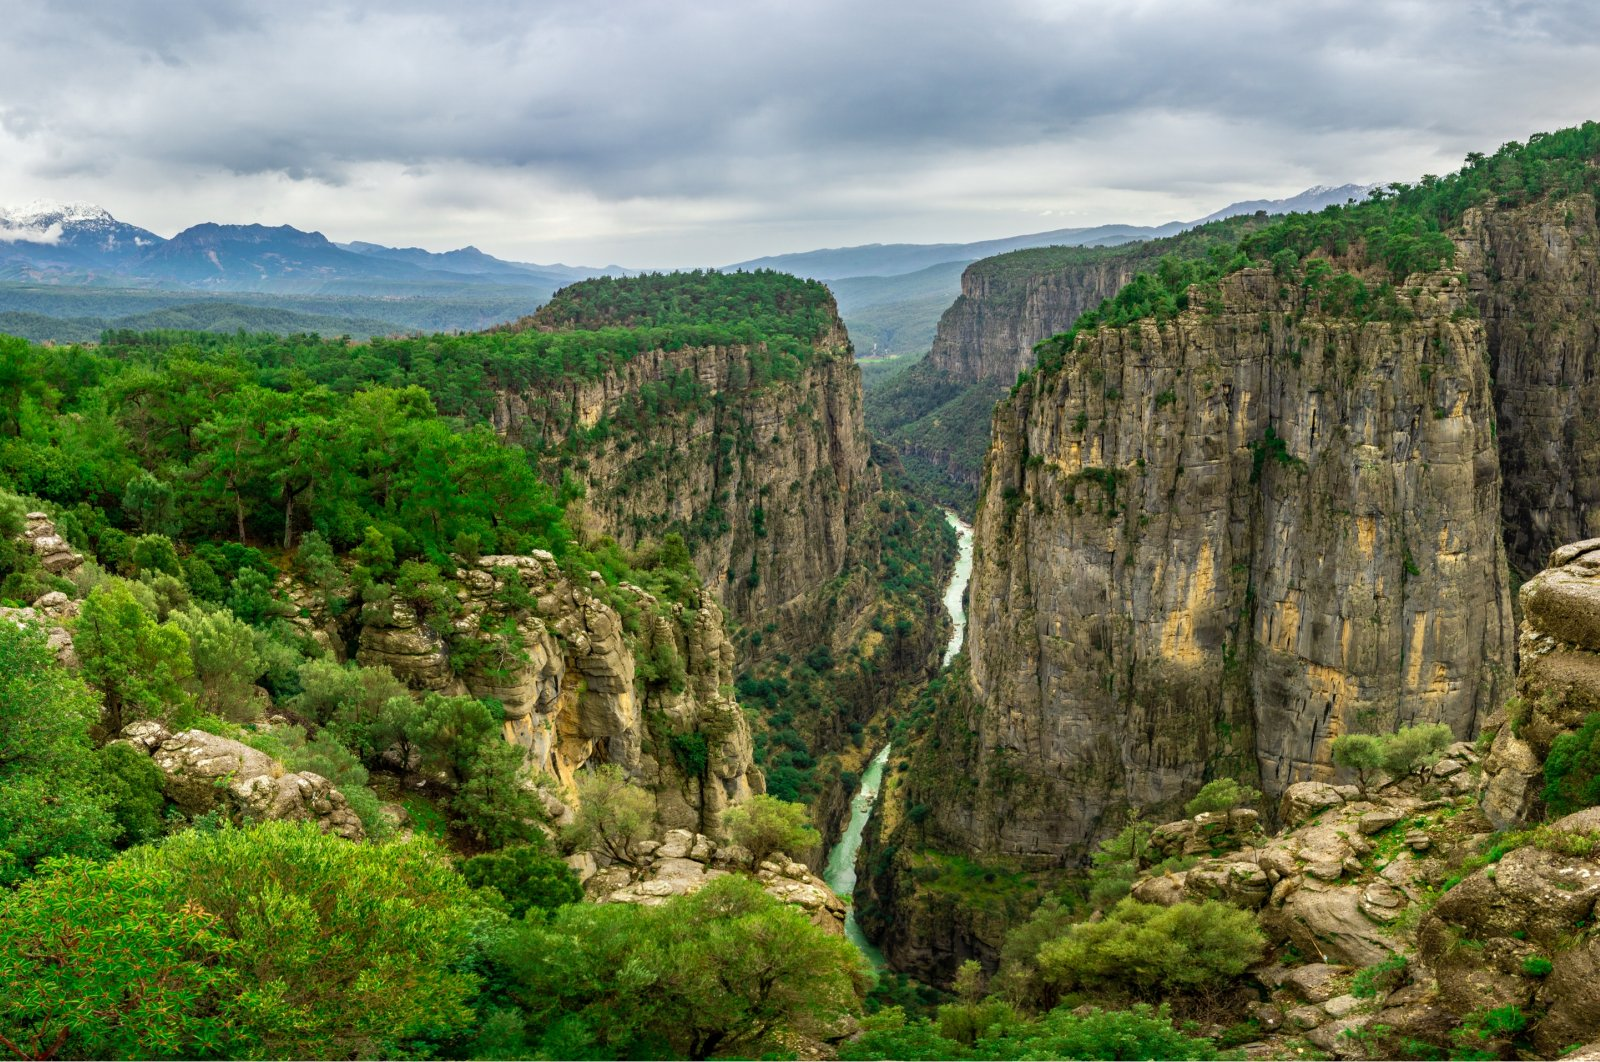 The Tazı Canyon, also called Wisdom Valley, offers visitors spectacular sights in Antalya, Turkey. (Shutterstock Photo)